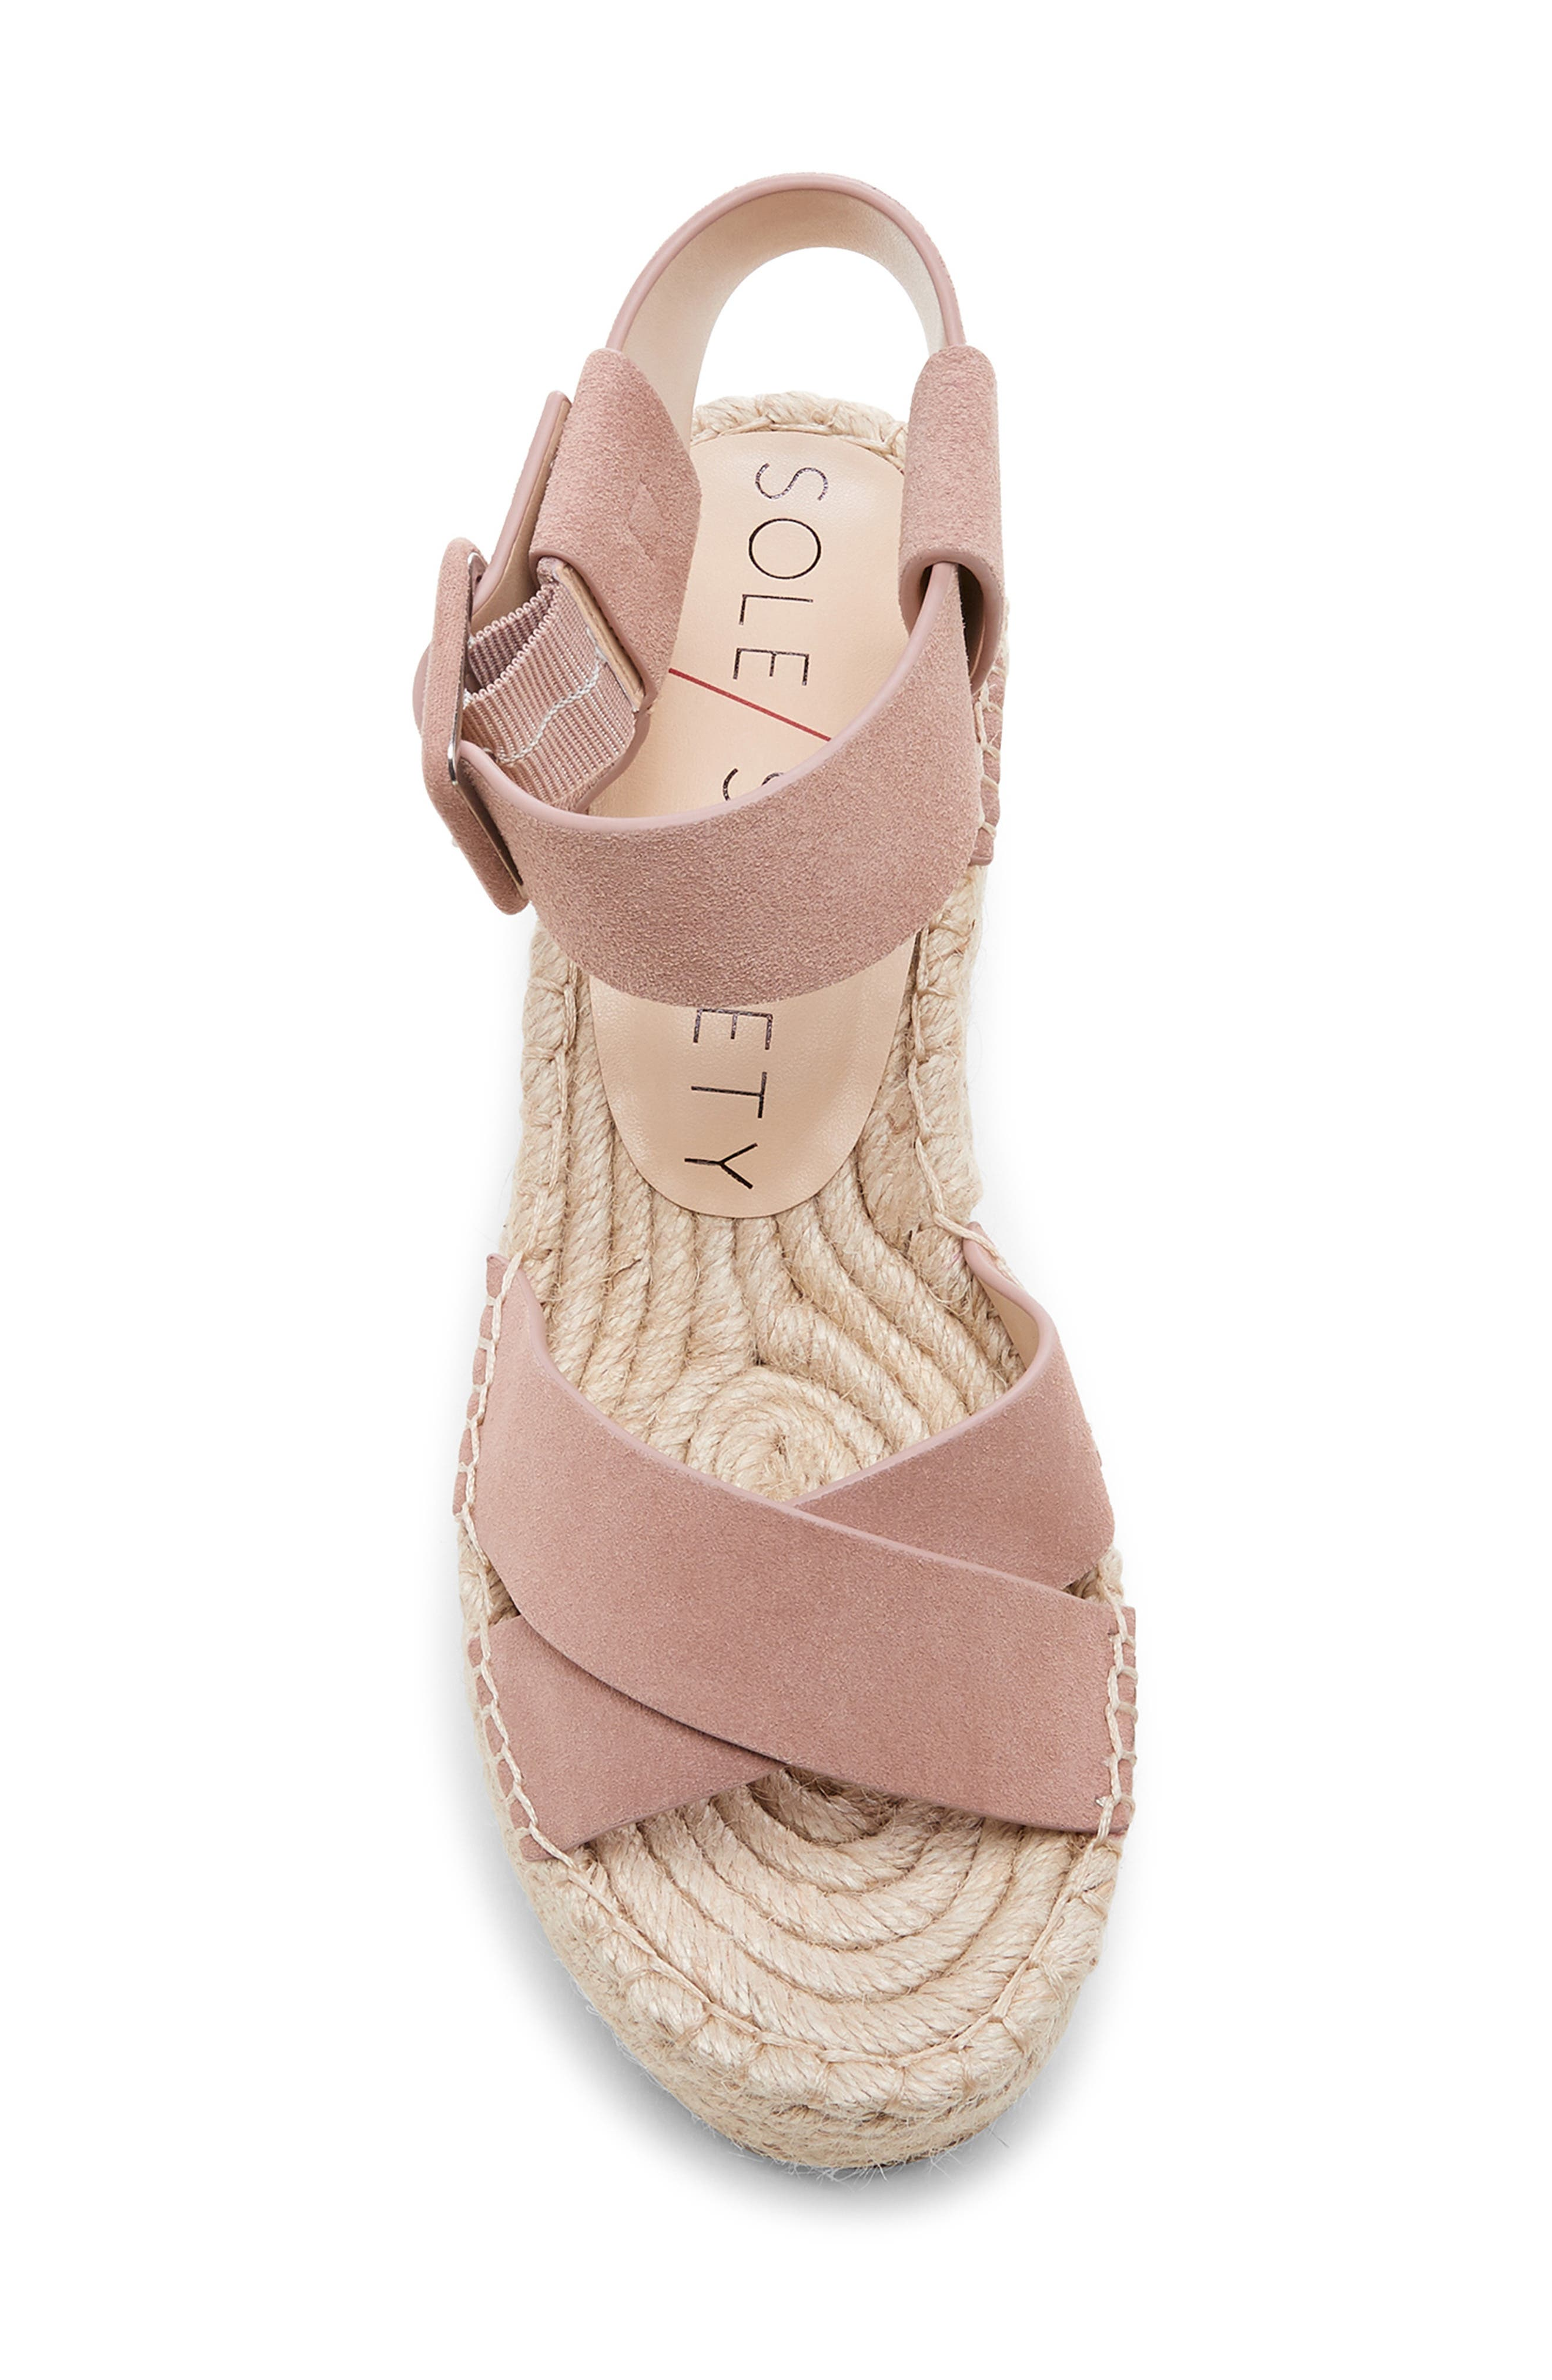 SOLE SOCIETY, Audrina Platform Espadrille Sandal, Alternate thumbnail 5, color, DUSTY ROSE SUEDE